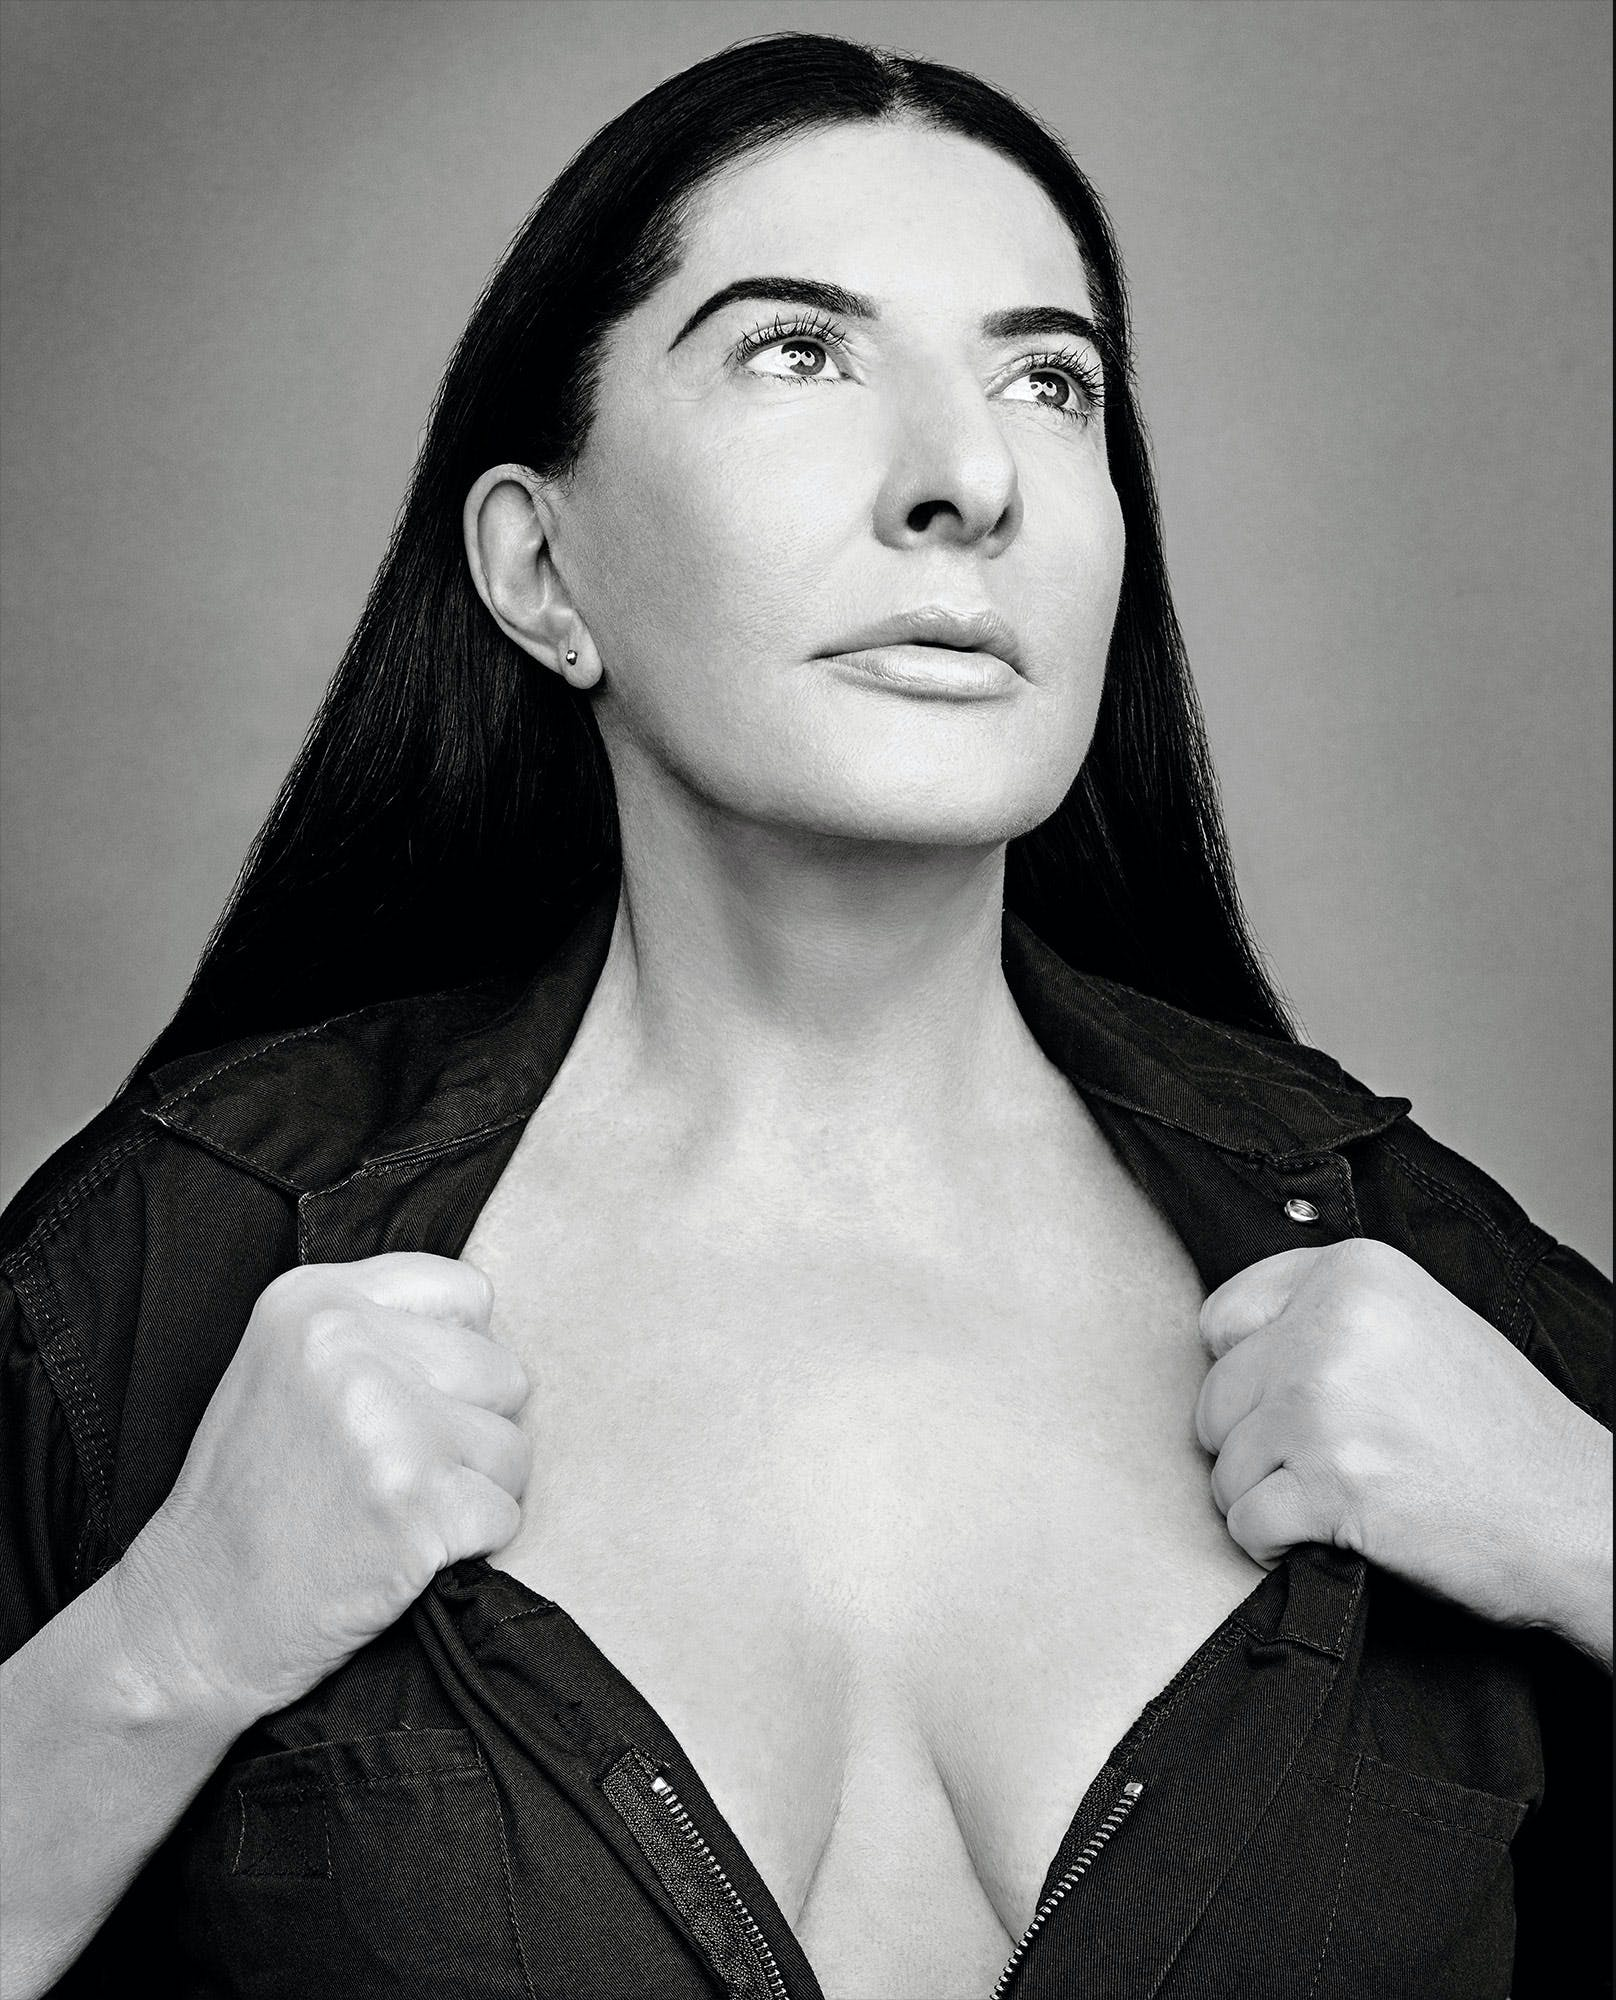 marina abramovic books articles 11.3